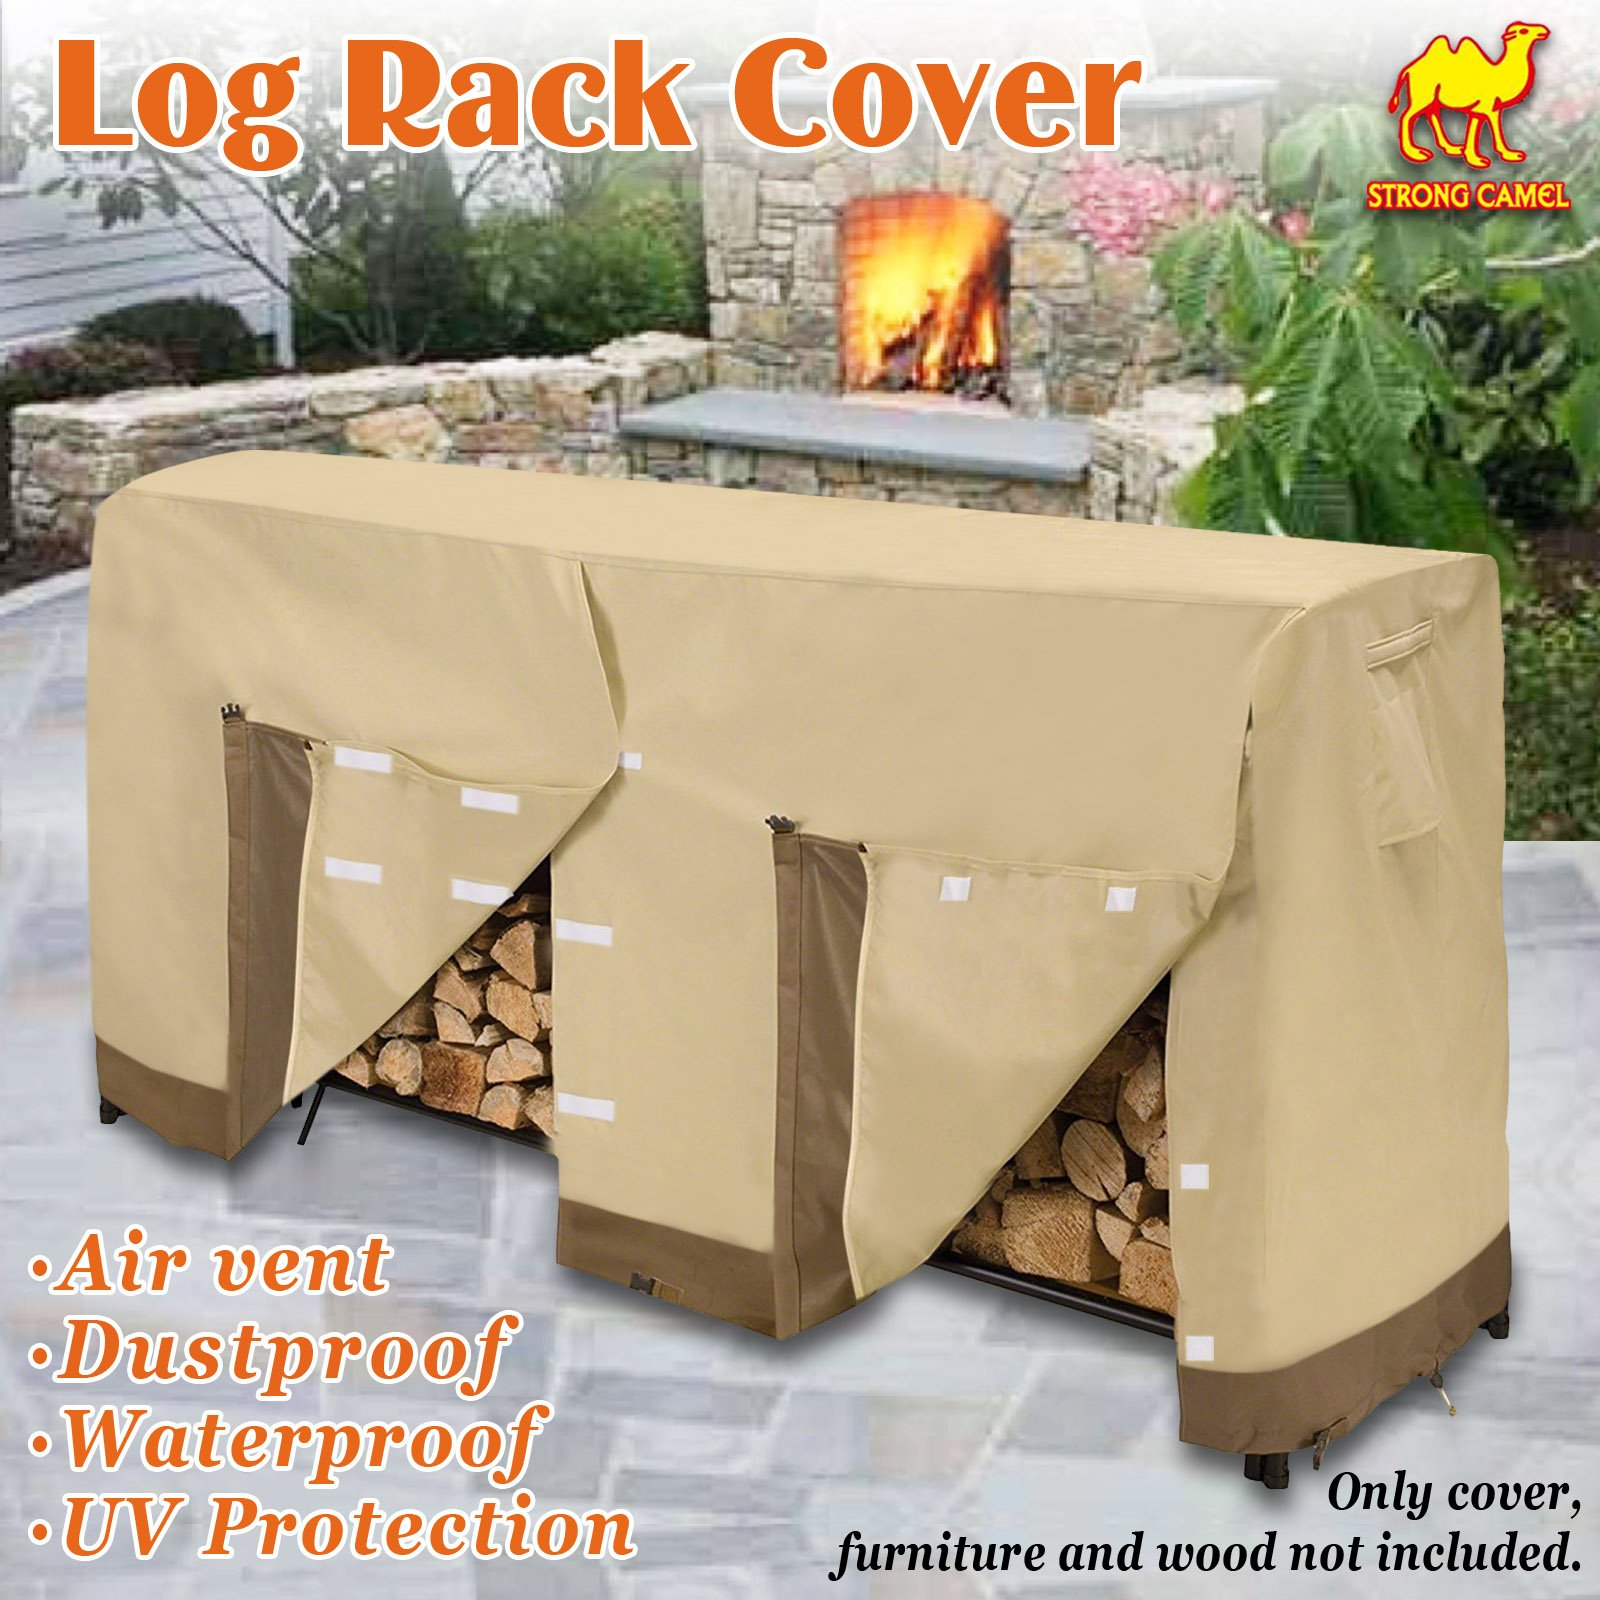 Strong Camel Premium Large Size Log Rack Cover Firewood Rack Waterproof Wood Storage Holder Cover ( Size 8.5' L x 2.1' x 3.5' H)